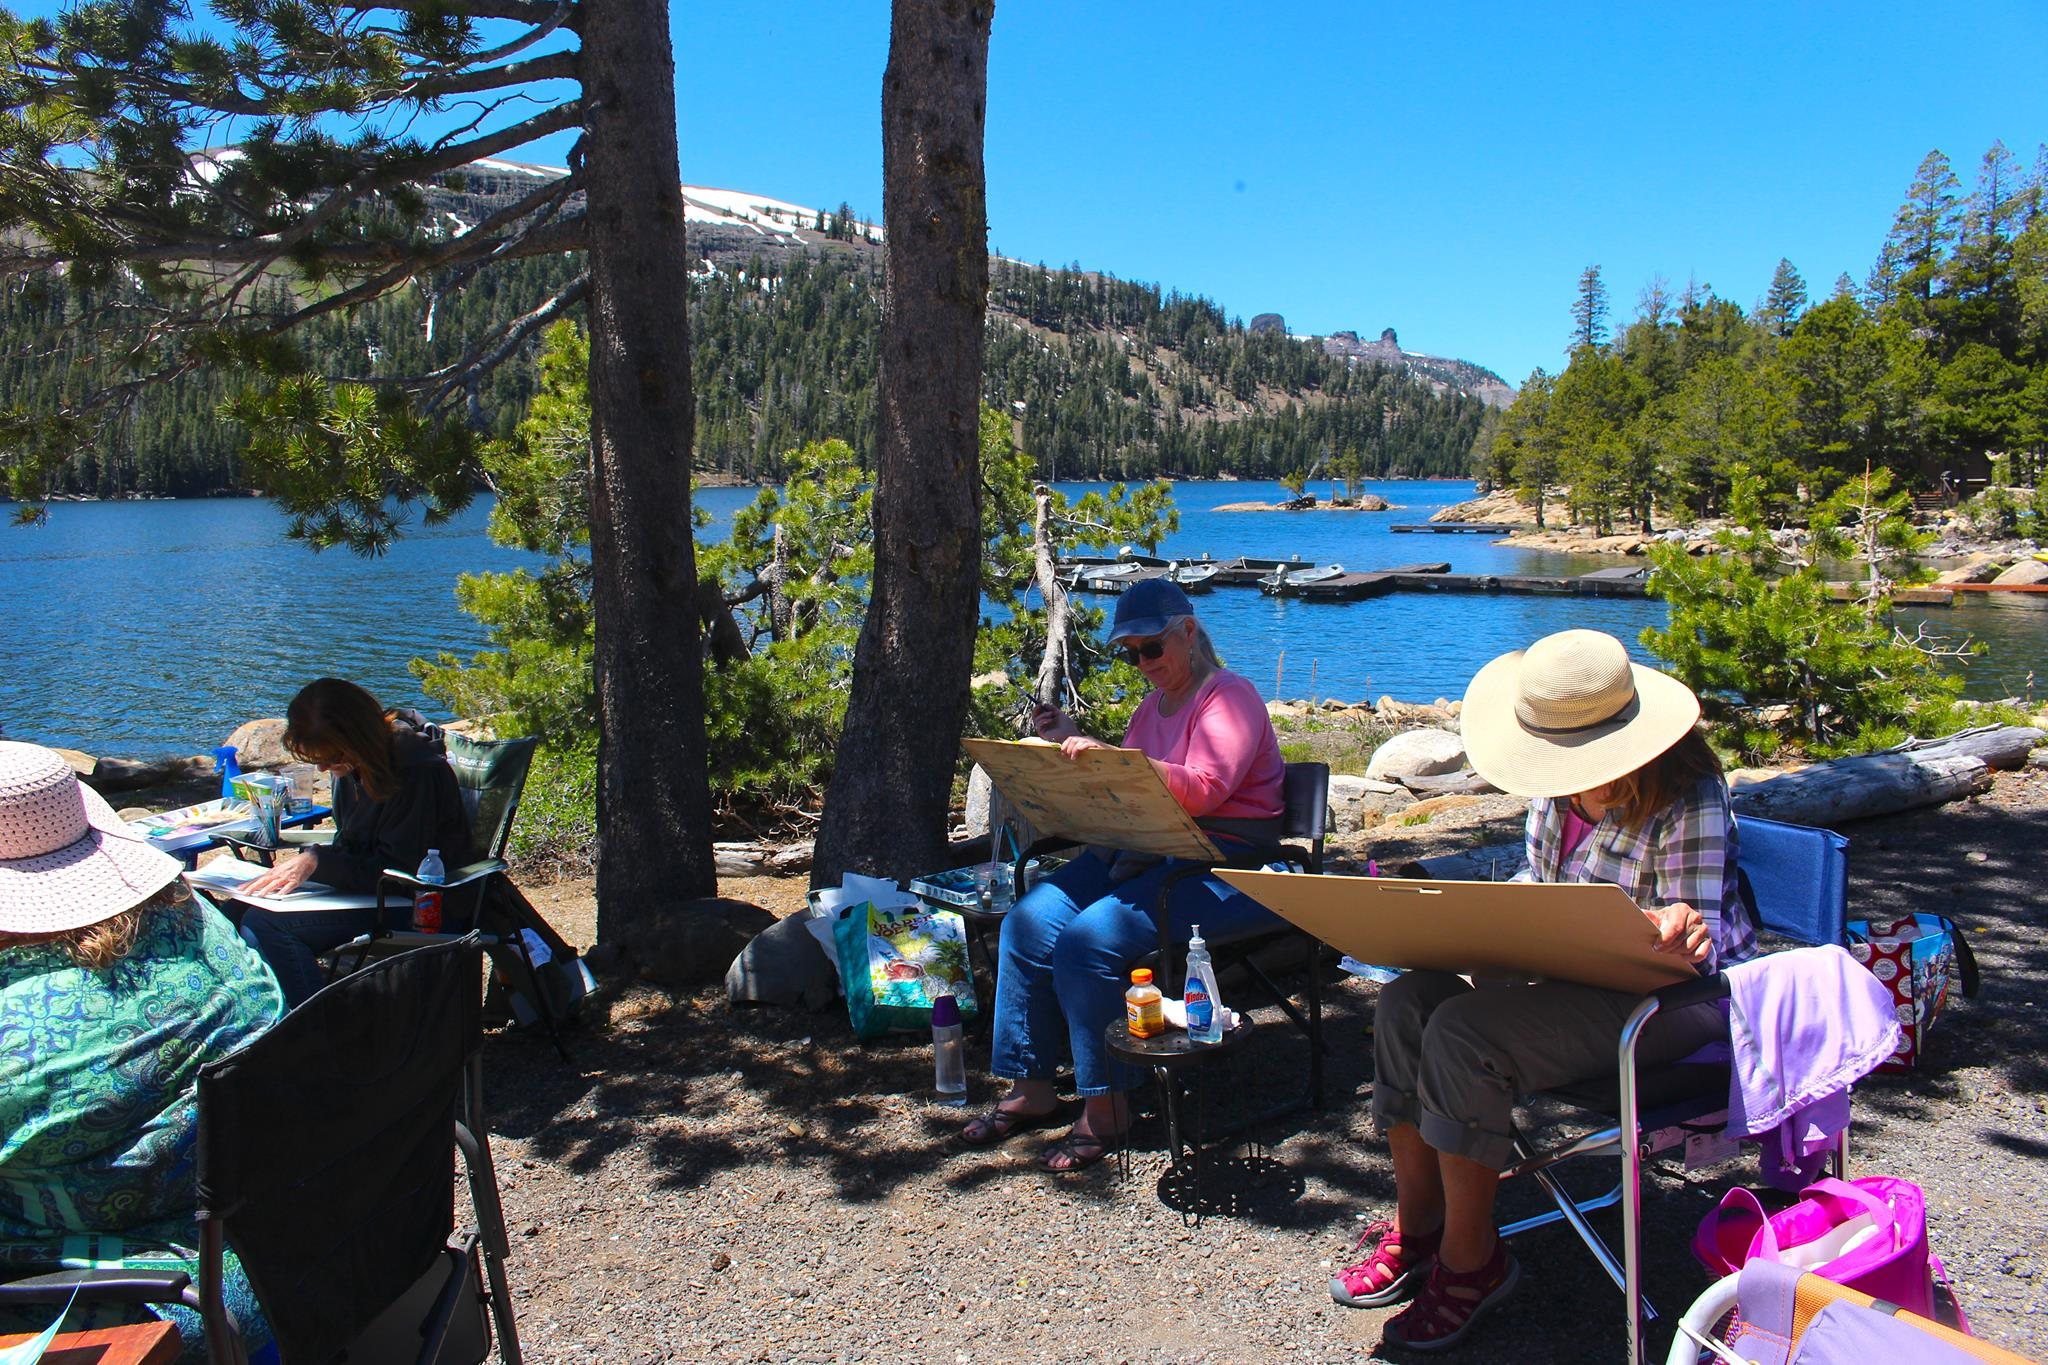 student photos at Caples Lake wc pic